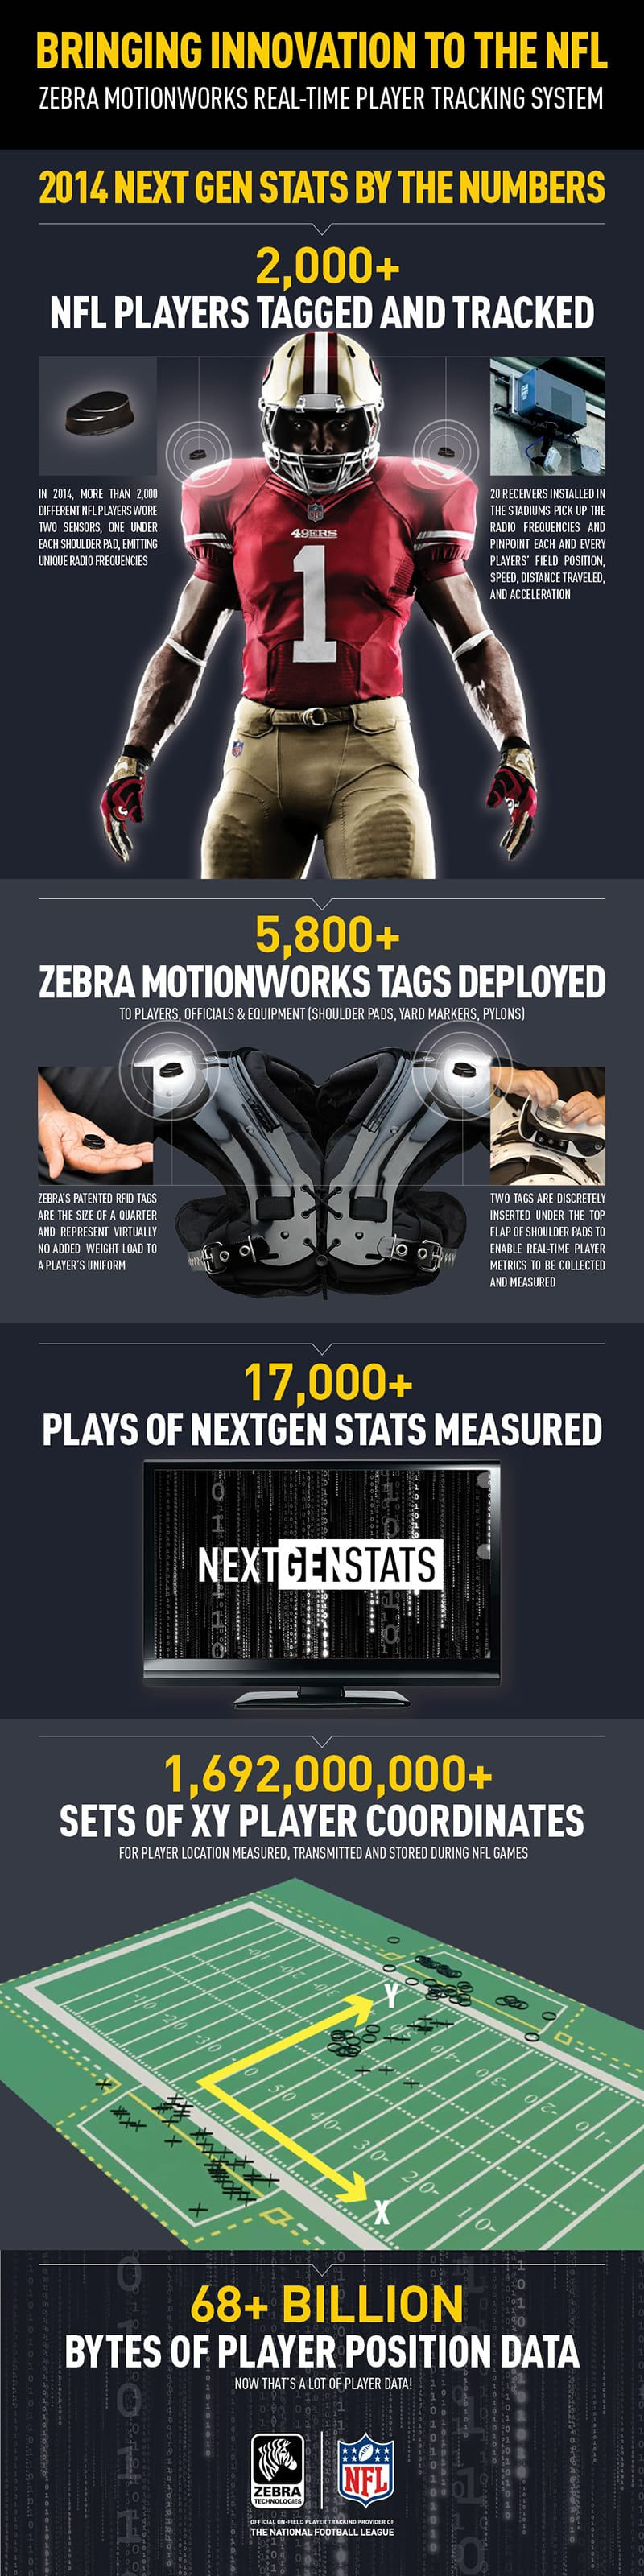 012115_ZEBRA_TECH_INFOGRAPHIC_NFL_800PXL_Approved (1)